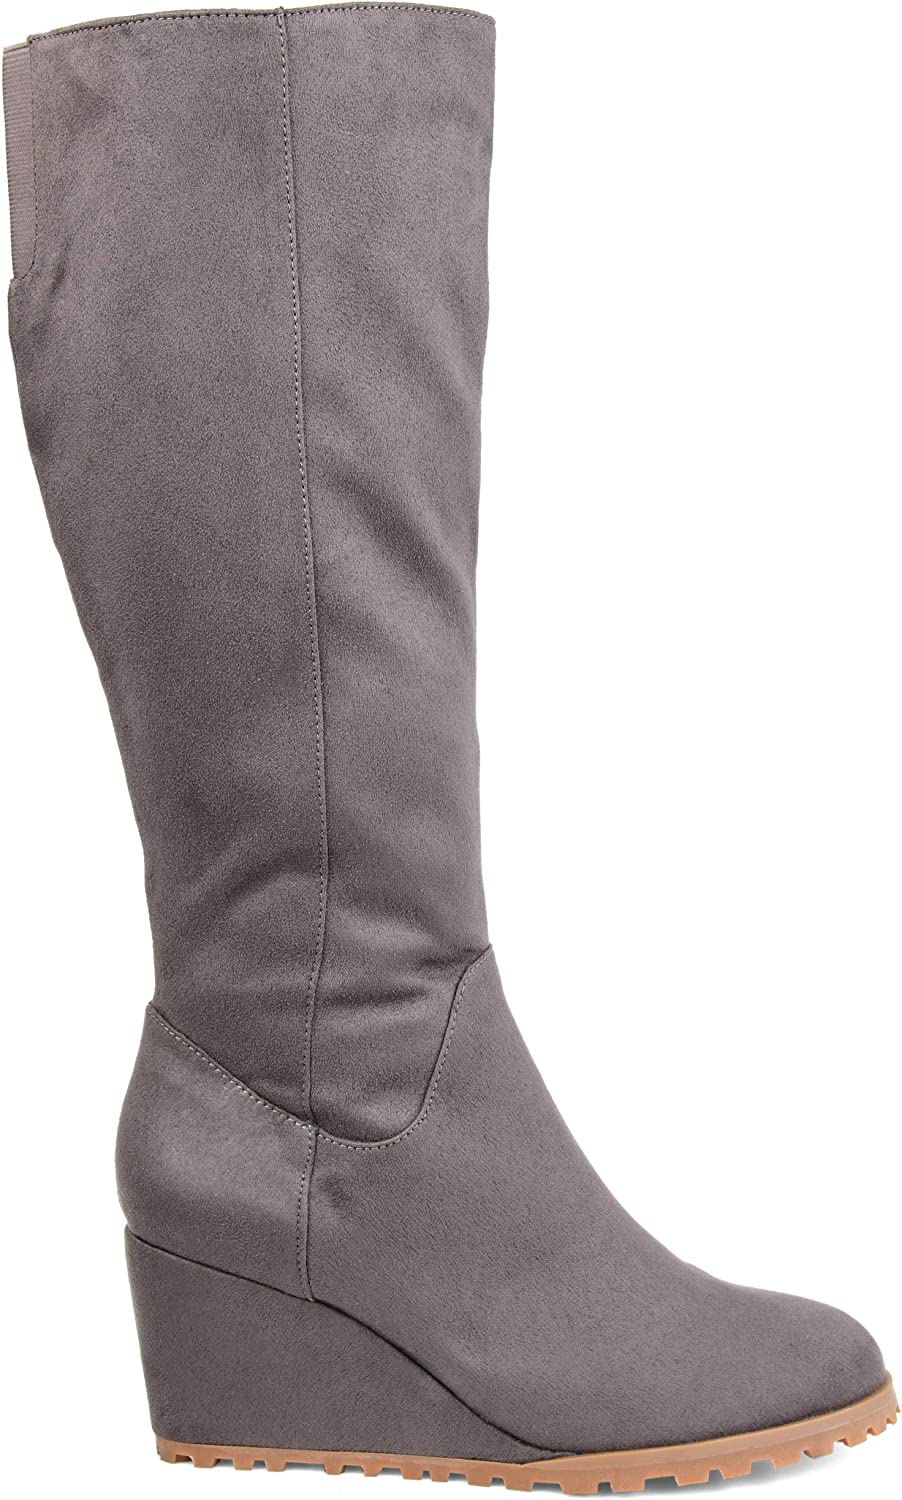 Comfort by Brinley Co. Womens Regular, Wide Calf, Extra Wide Calf Wedge Boot